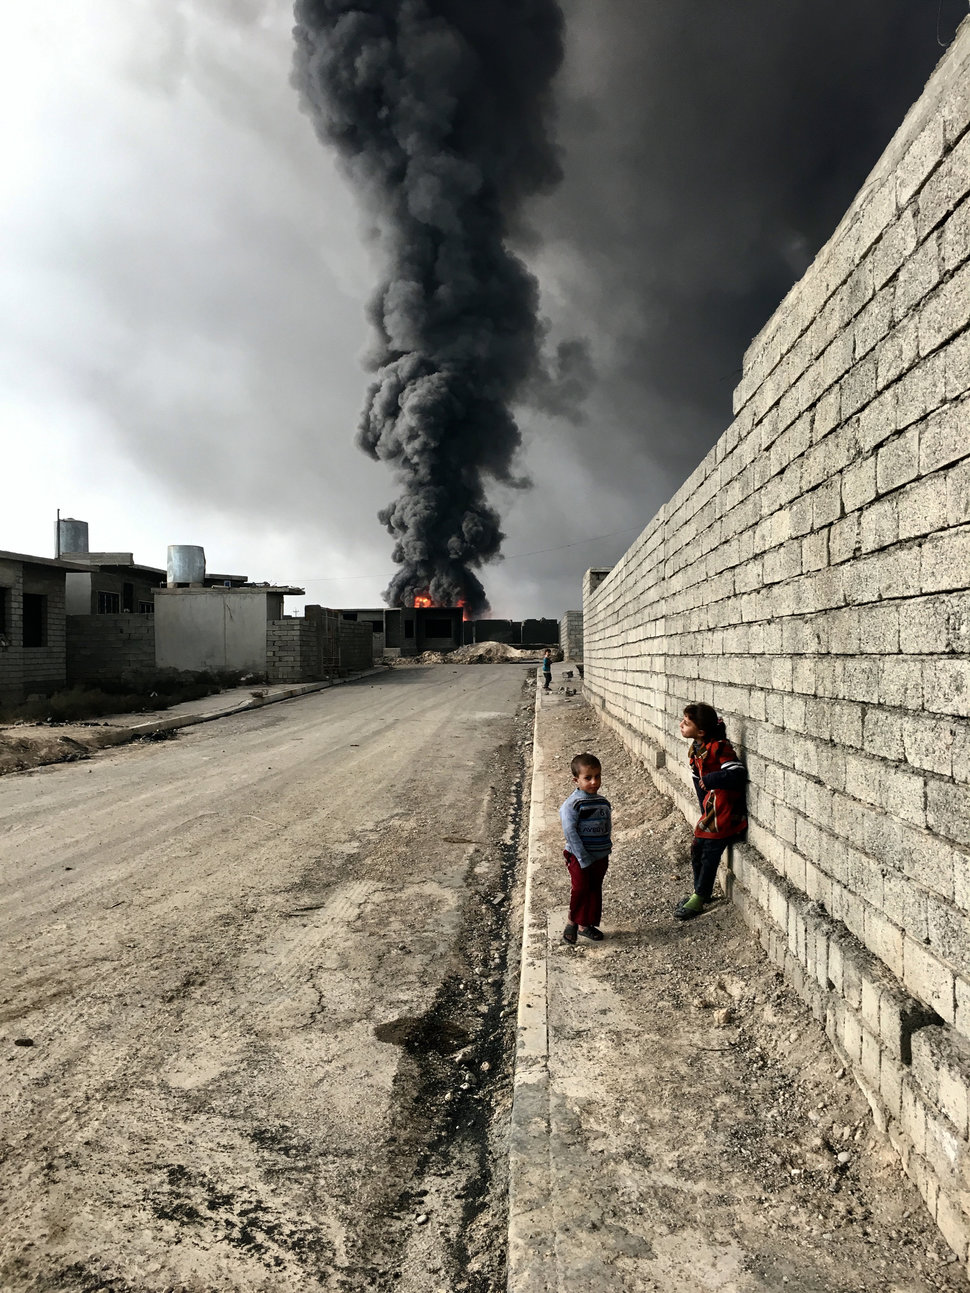 Children roam the streets in Qayyarah near the fire and smoke billowing from oil wells, set ablaze by ISIS militants.